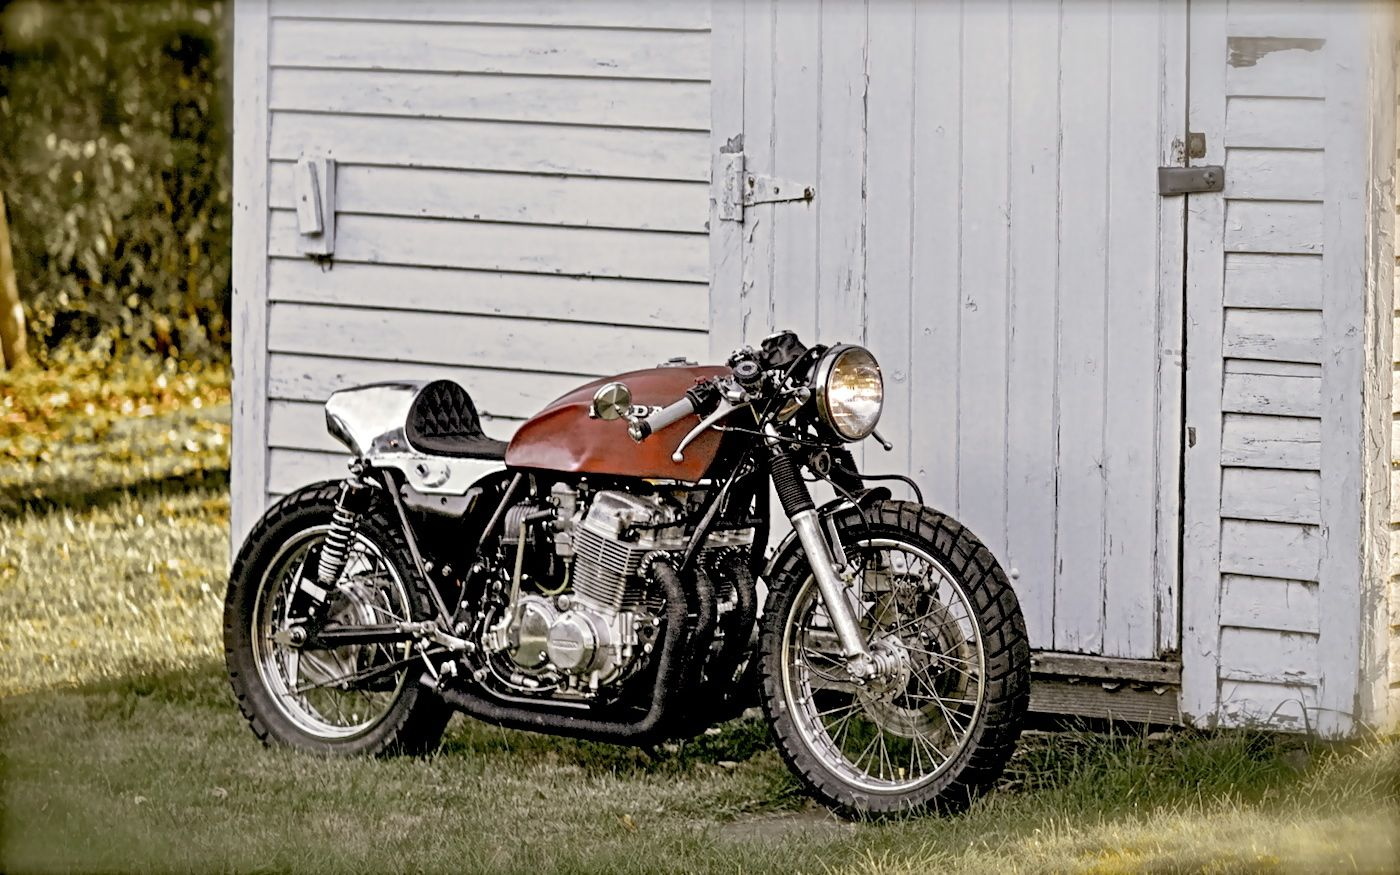 Cafe Racers Scramblers Street Trackers Vintage Bikes And Much More The Best Garage For Special Motorcycles And Cb750 Cafe Racer Cafe Racer Honda Cb750 Cafe [ 875 x 1400 Pixel ]